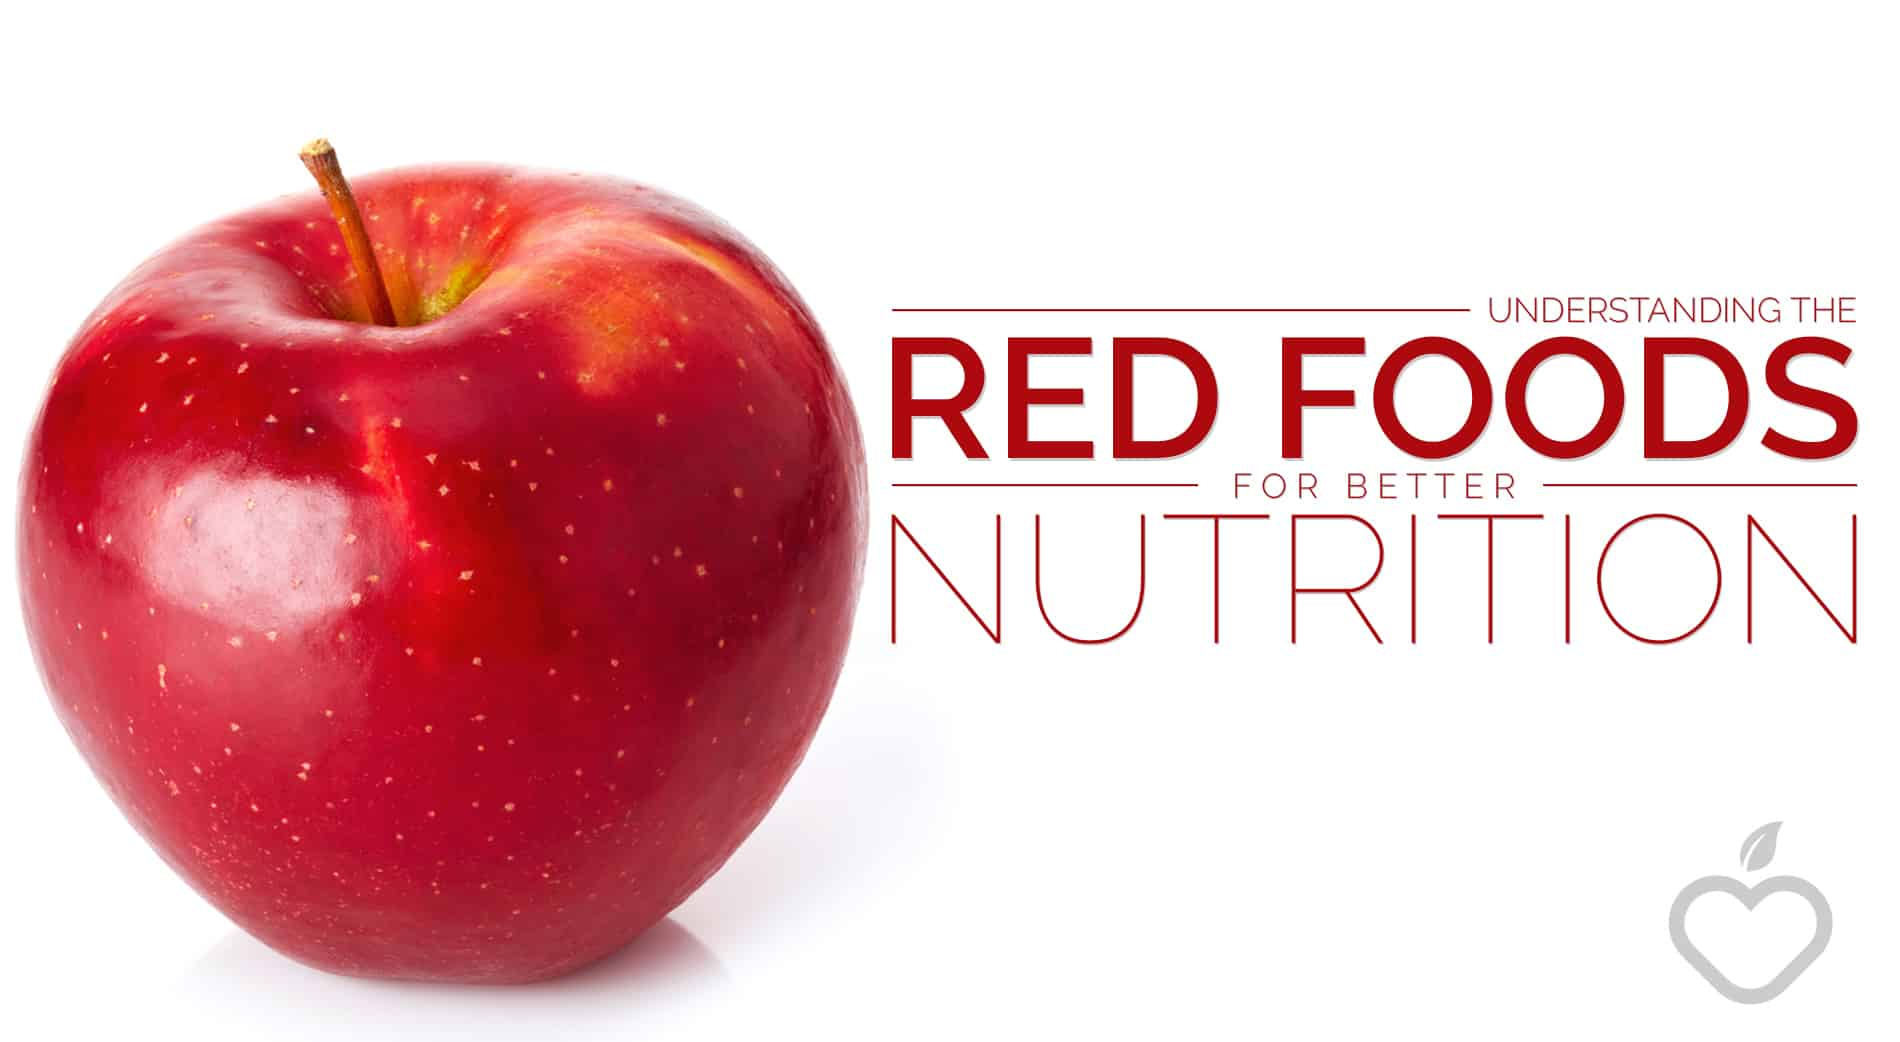 Red Foods Image Design 1 - Understanding the Red Foods For Better Nutrition